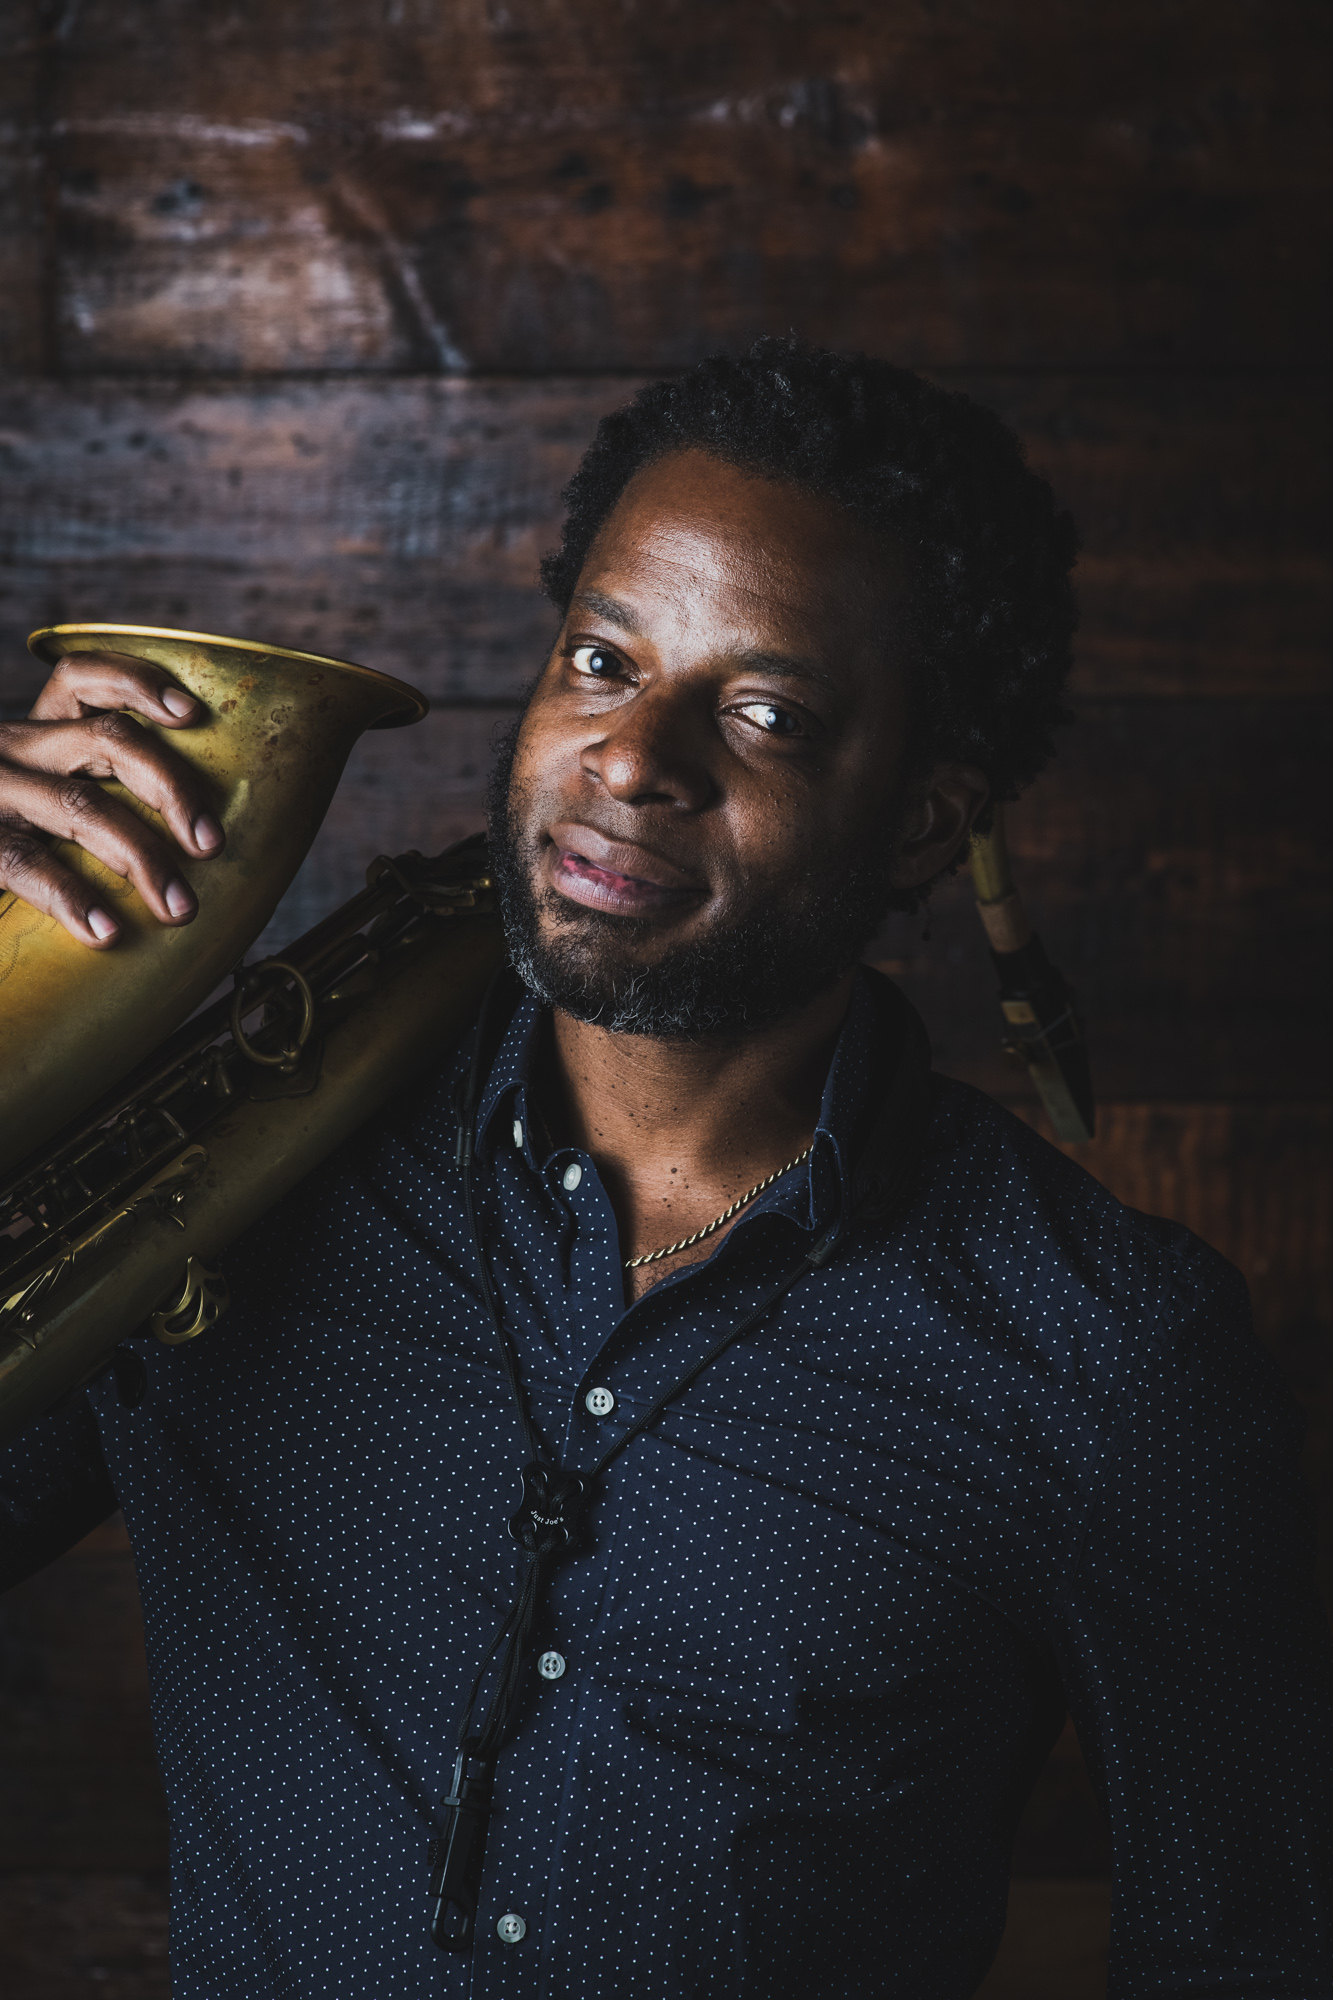 Brian Horton Trio - Every Tuesday, 9:00-11:30Join Us Every Tuesday Night For Live Jazz with Brian Horton and his Friends! Two sets from 9-11:30. No tickets, come as you are, just order two drinks.